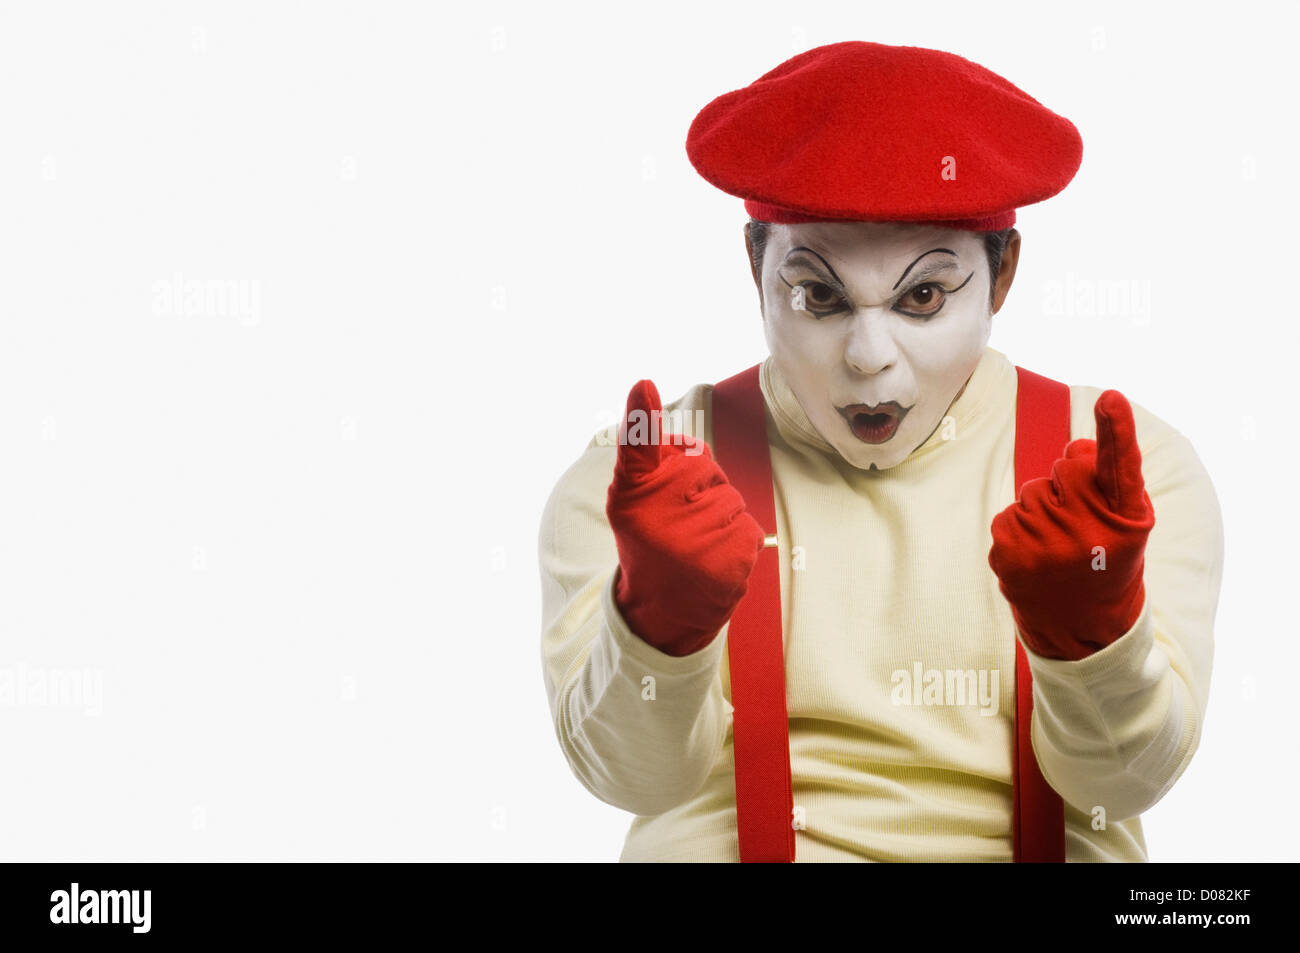 Portrait of a mime gesturing - Stock Image